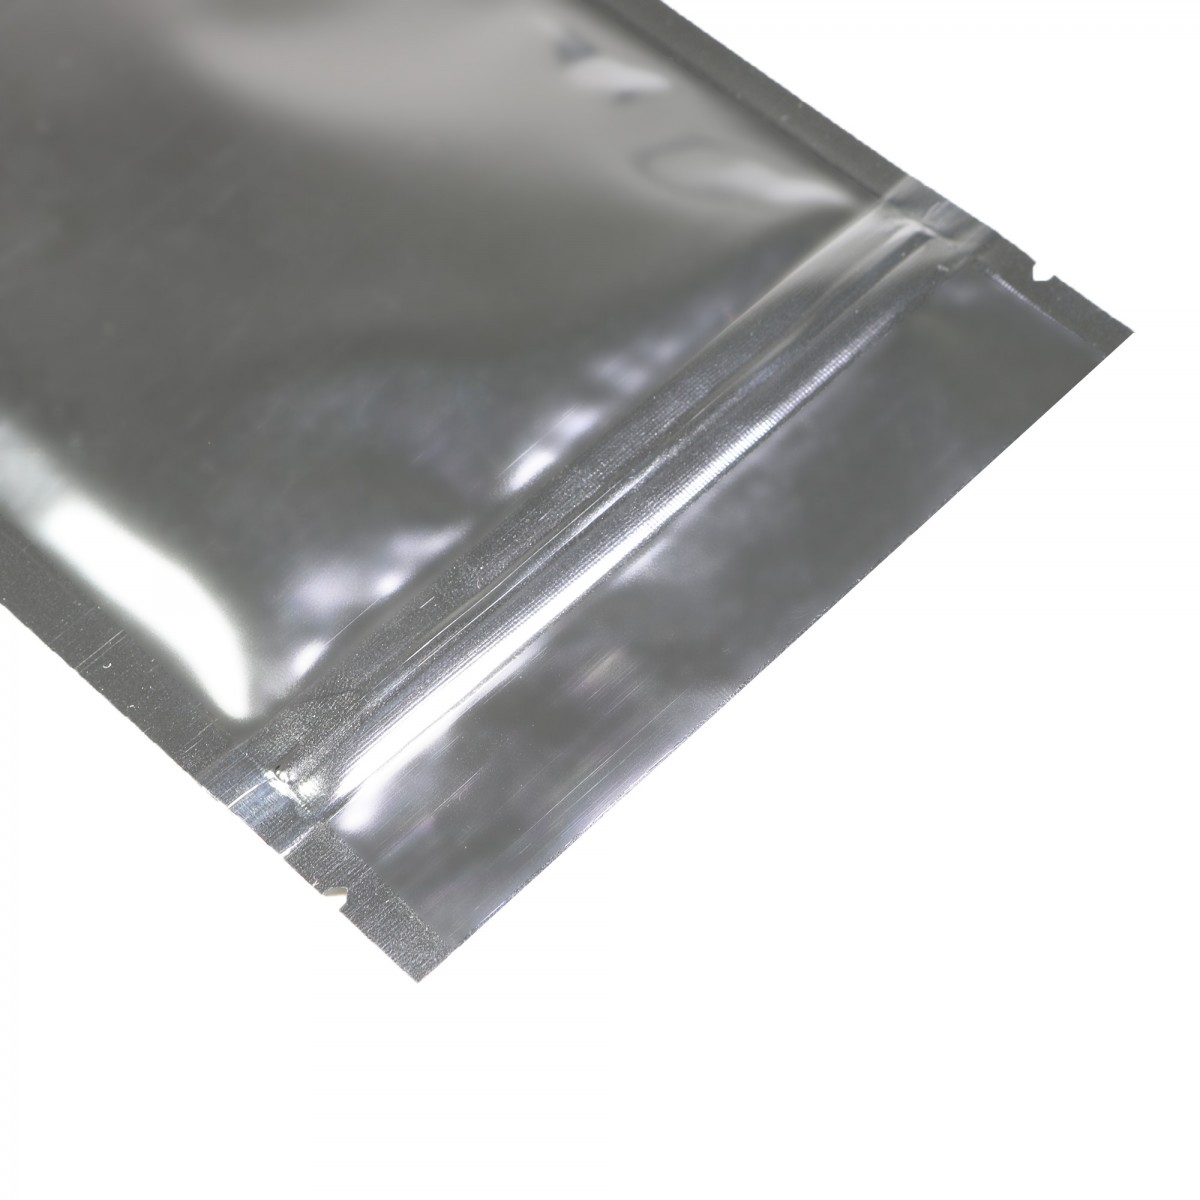 silver shiny metallic mylar ziplock bags 8 5 cm x 13 cm 3 3 inches x 5 1 inches 500 bags lot. Black Bedroom Furniture Sets. Home Design Ideas